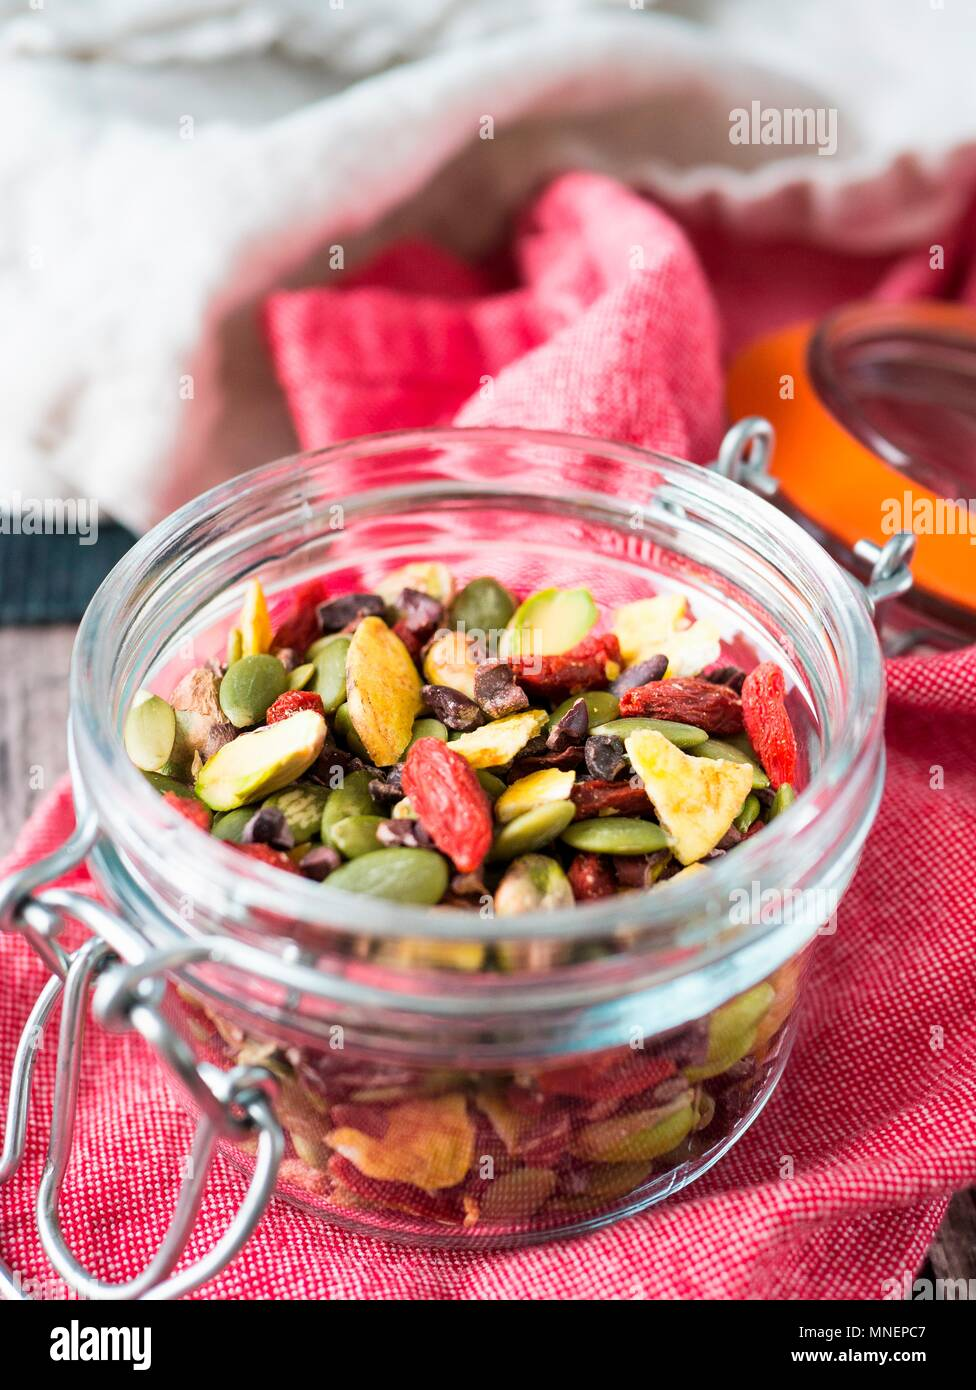 Healthy trail mix in small jar - Stock Image